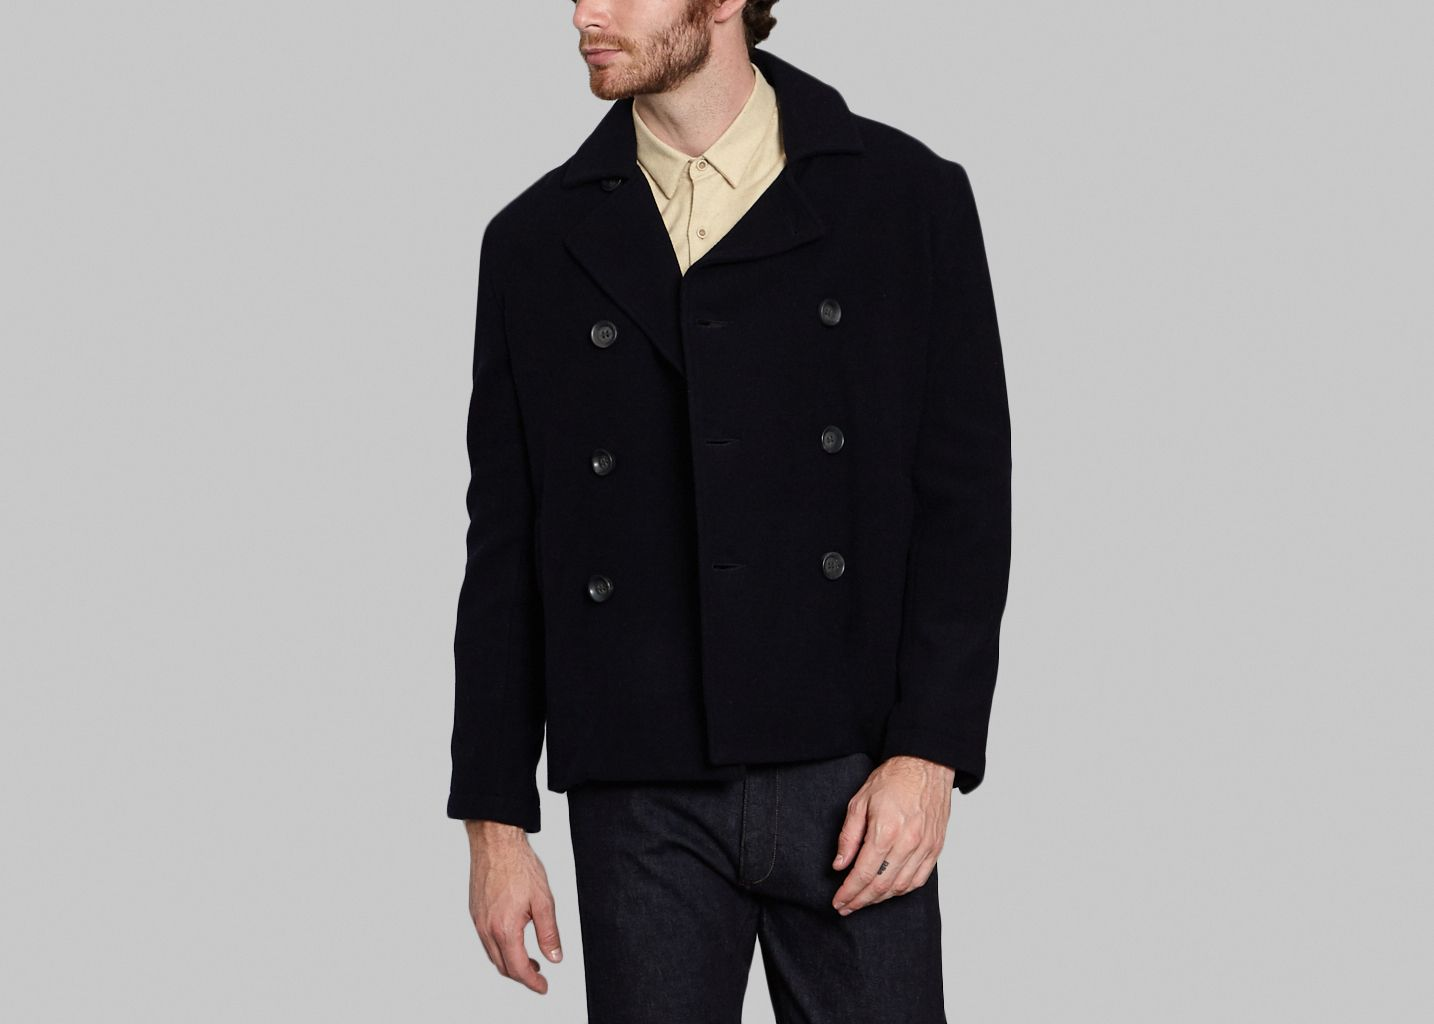 Wool and Cashmere Pea Coat - JagVi